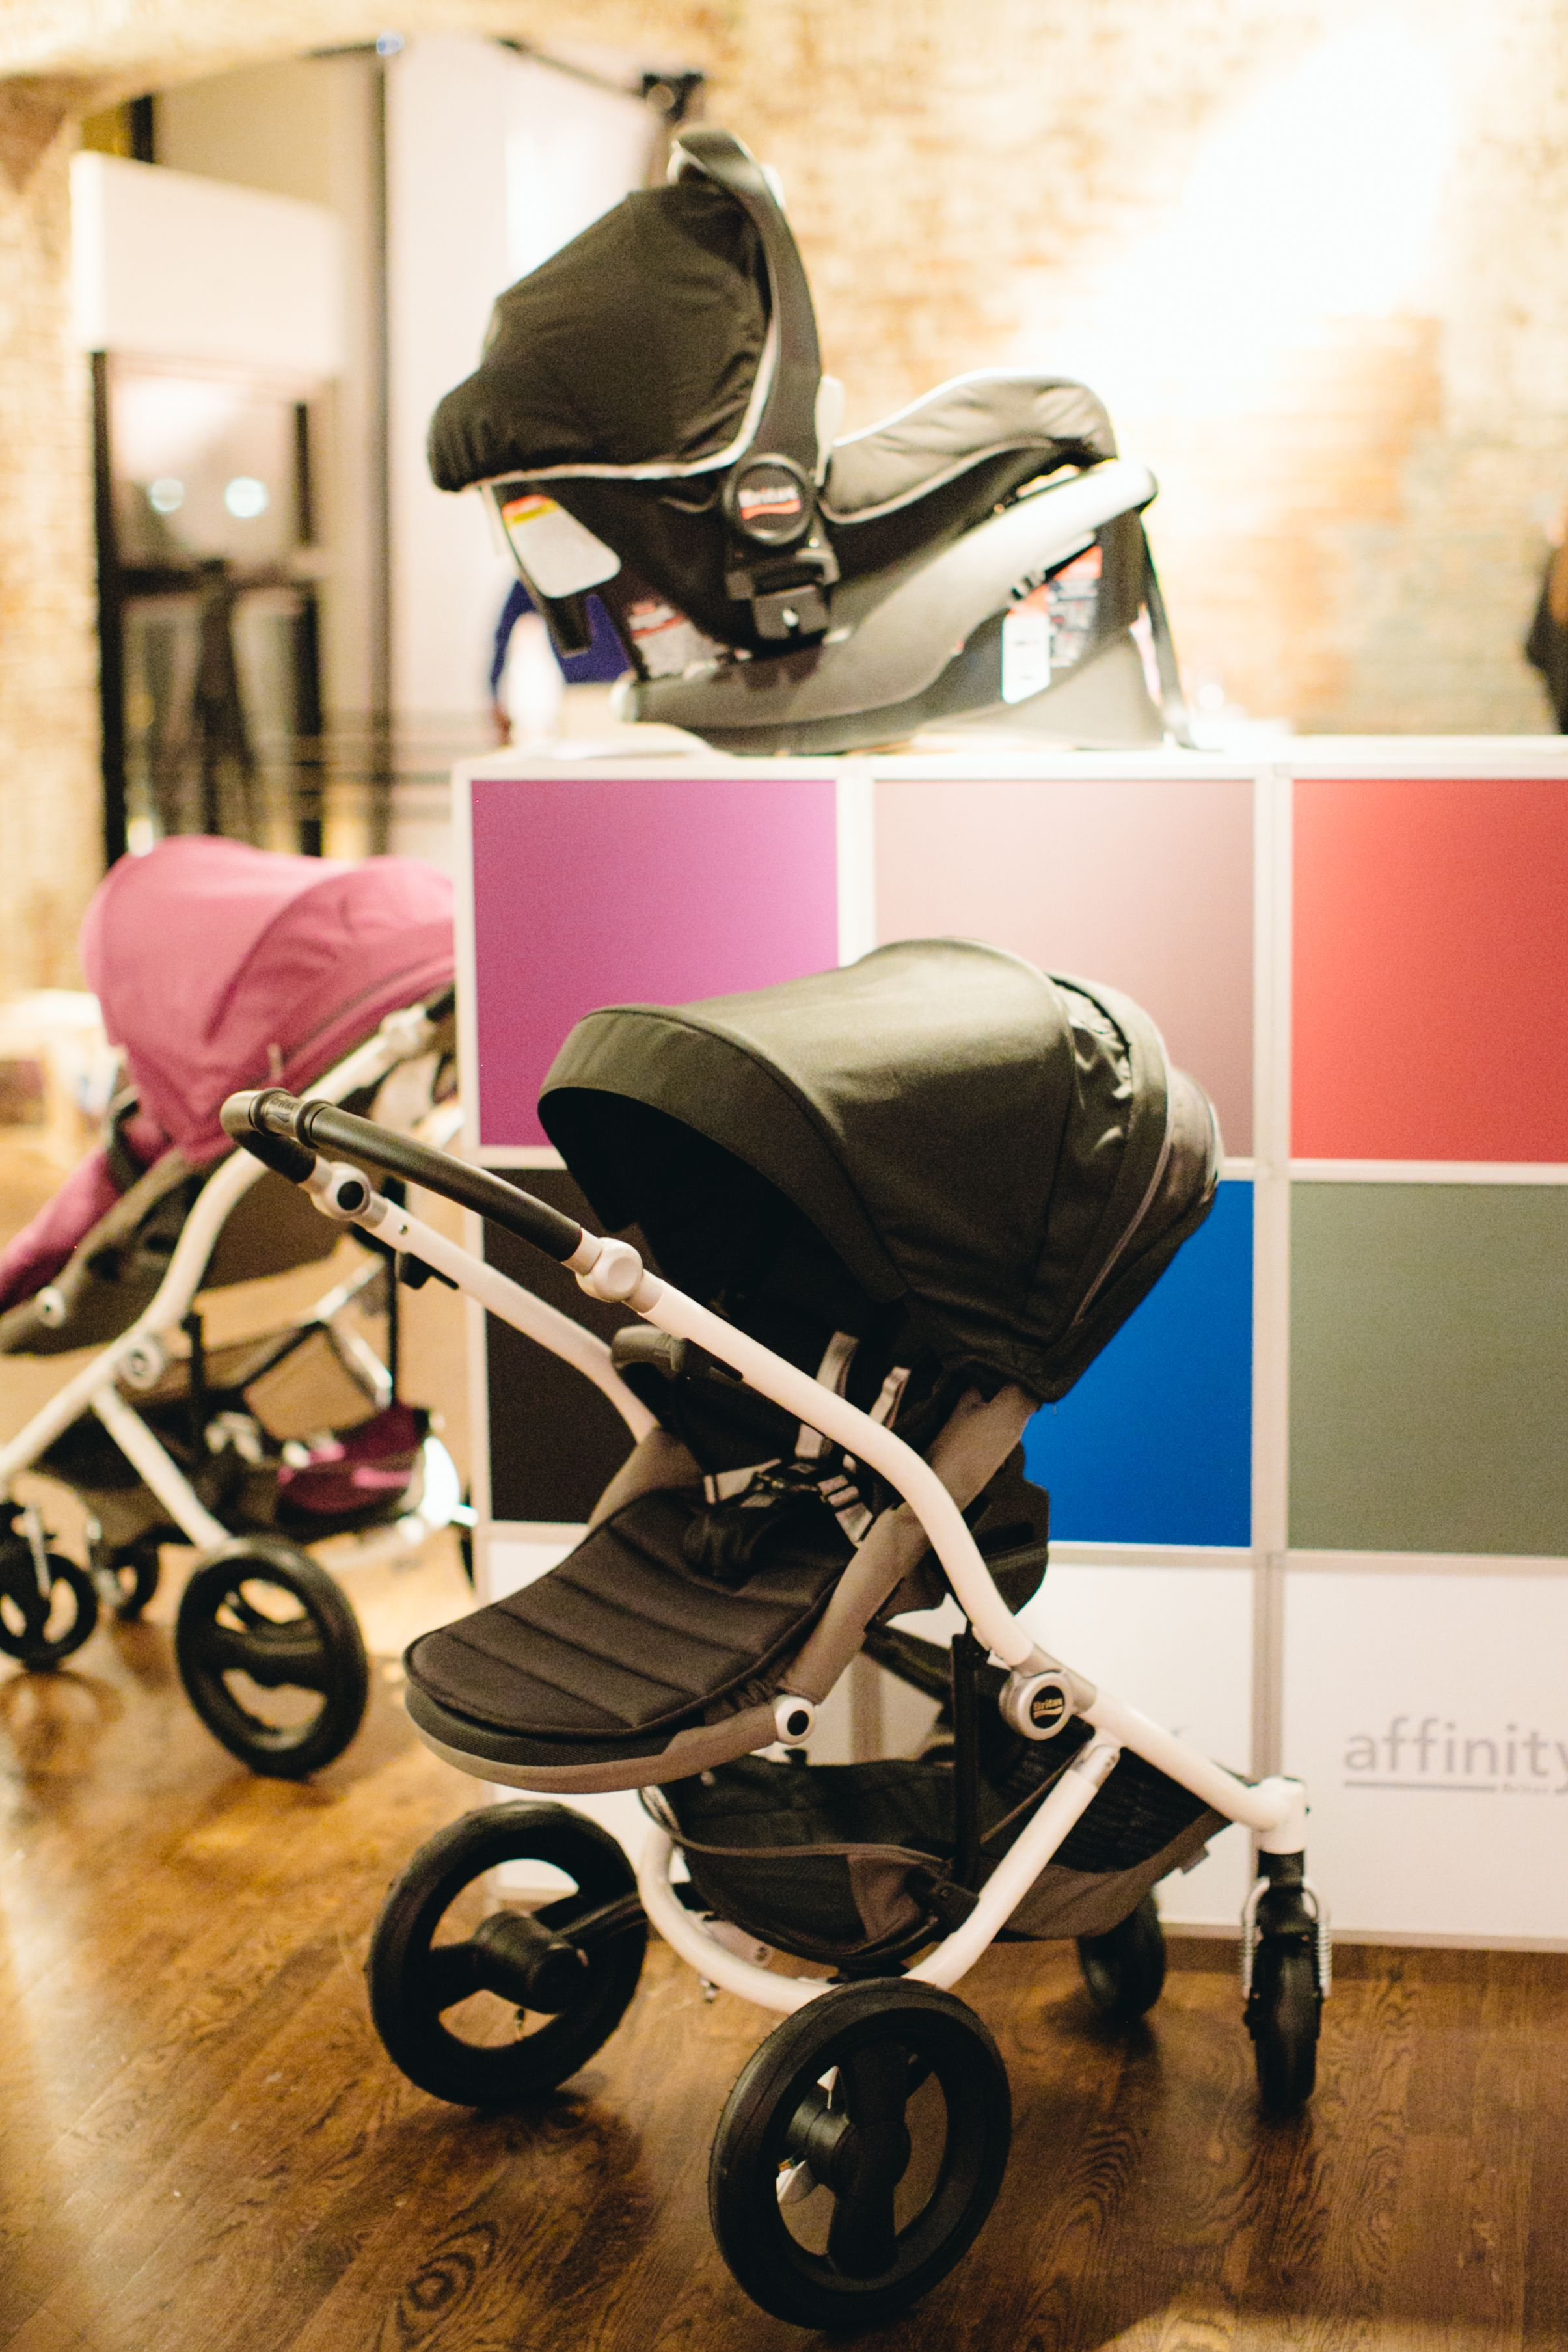 Affinity Stroller by Britax - NYC Launch Event #moms #bloggers ...